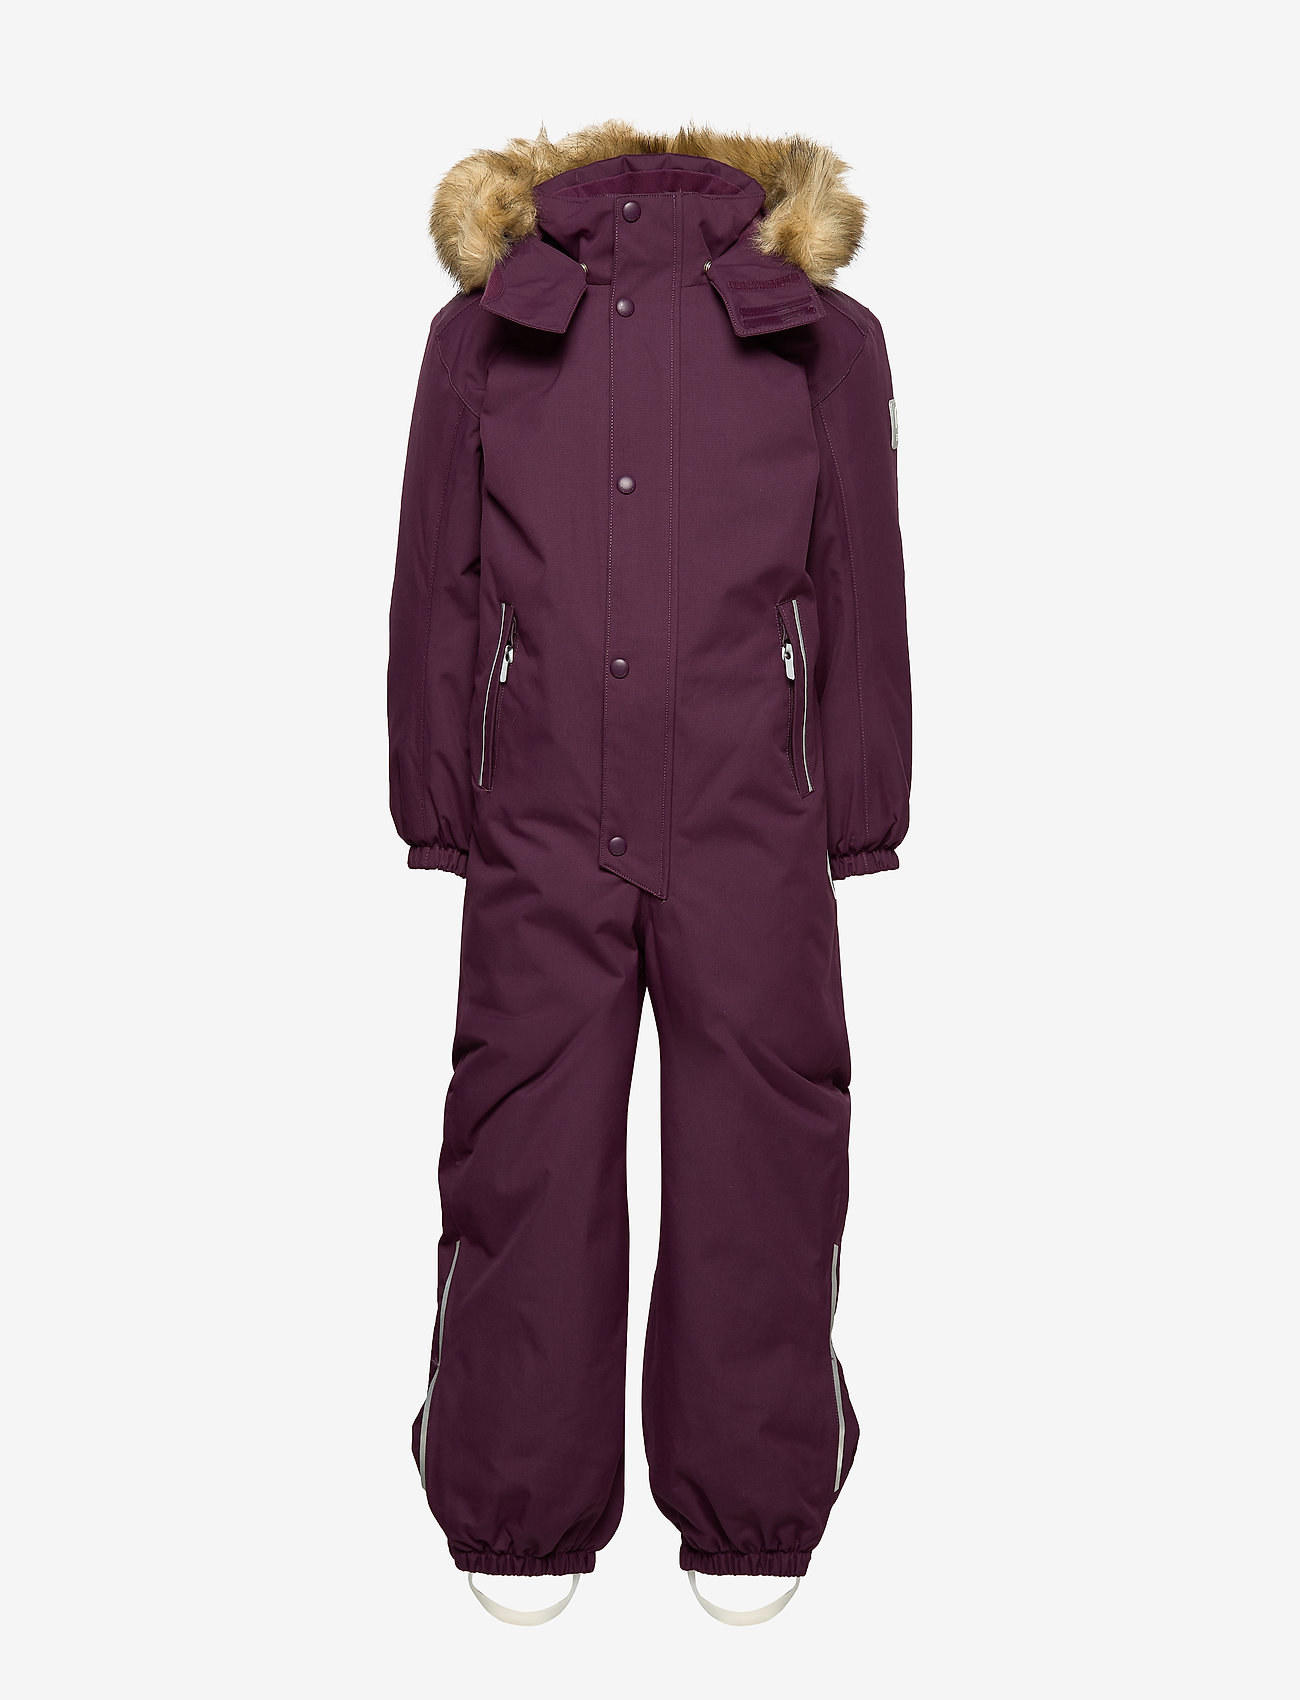 Reima - Stavanger - snowsuit - deep purple - 1